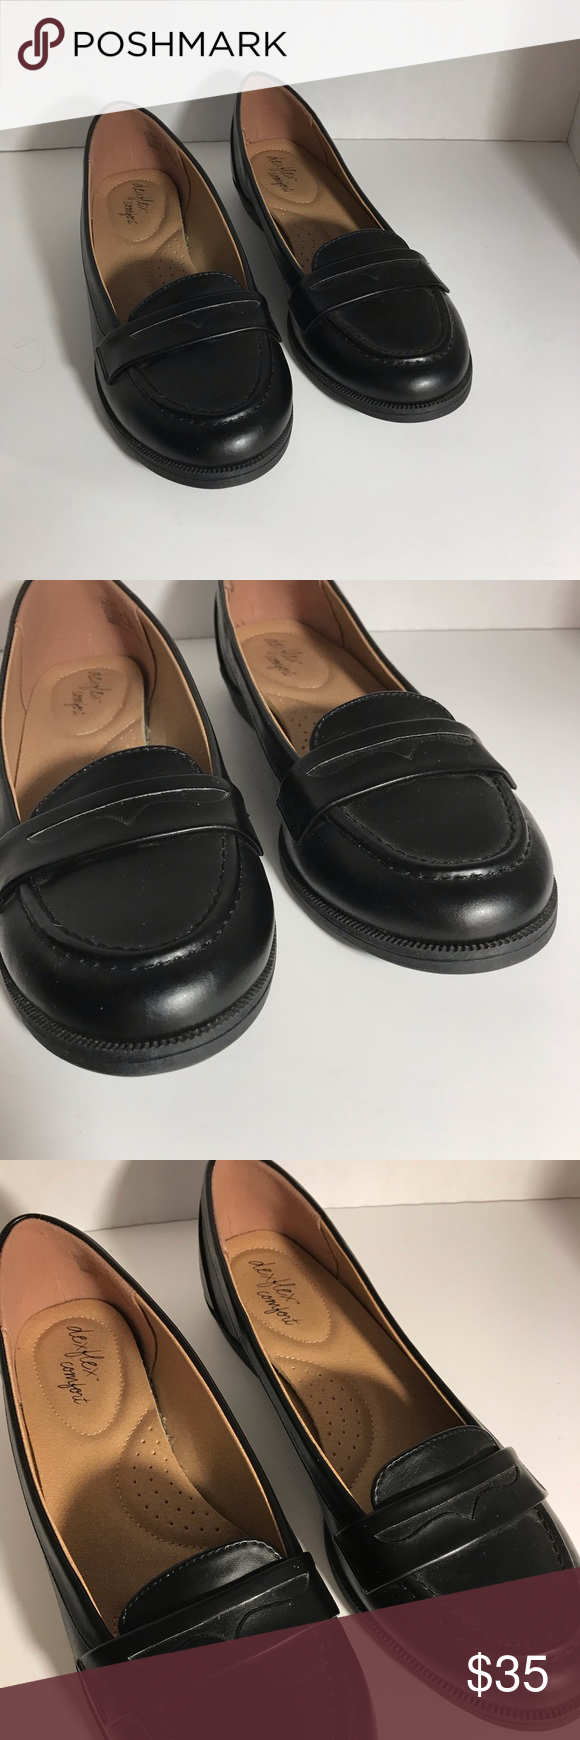 Dexflex Comfort Black Leather Loafers Size 9 In 2020 Black Leather Loafers Leather Loafers Black Leather